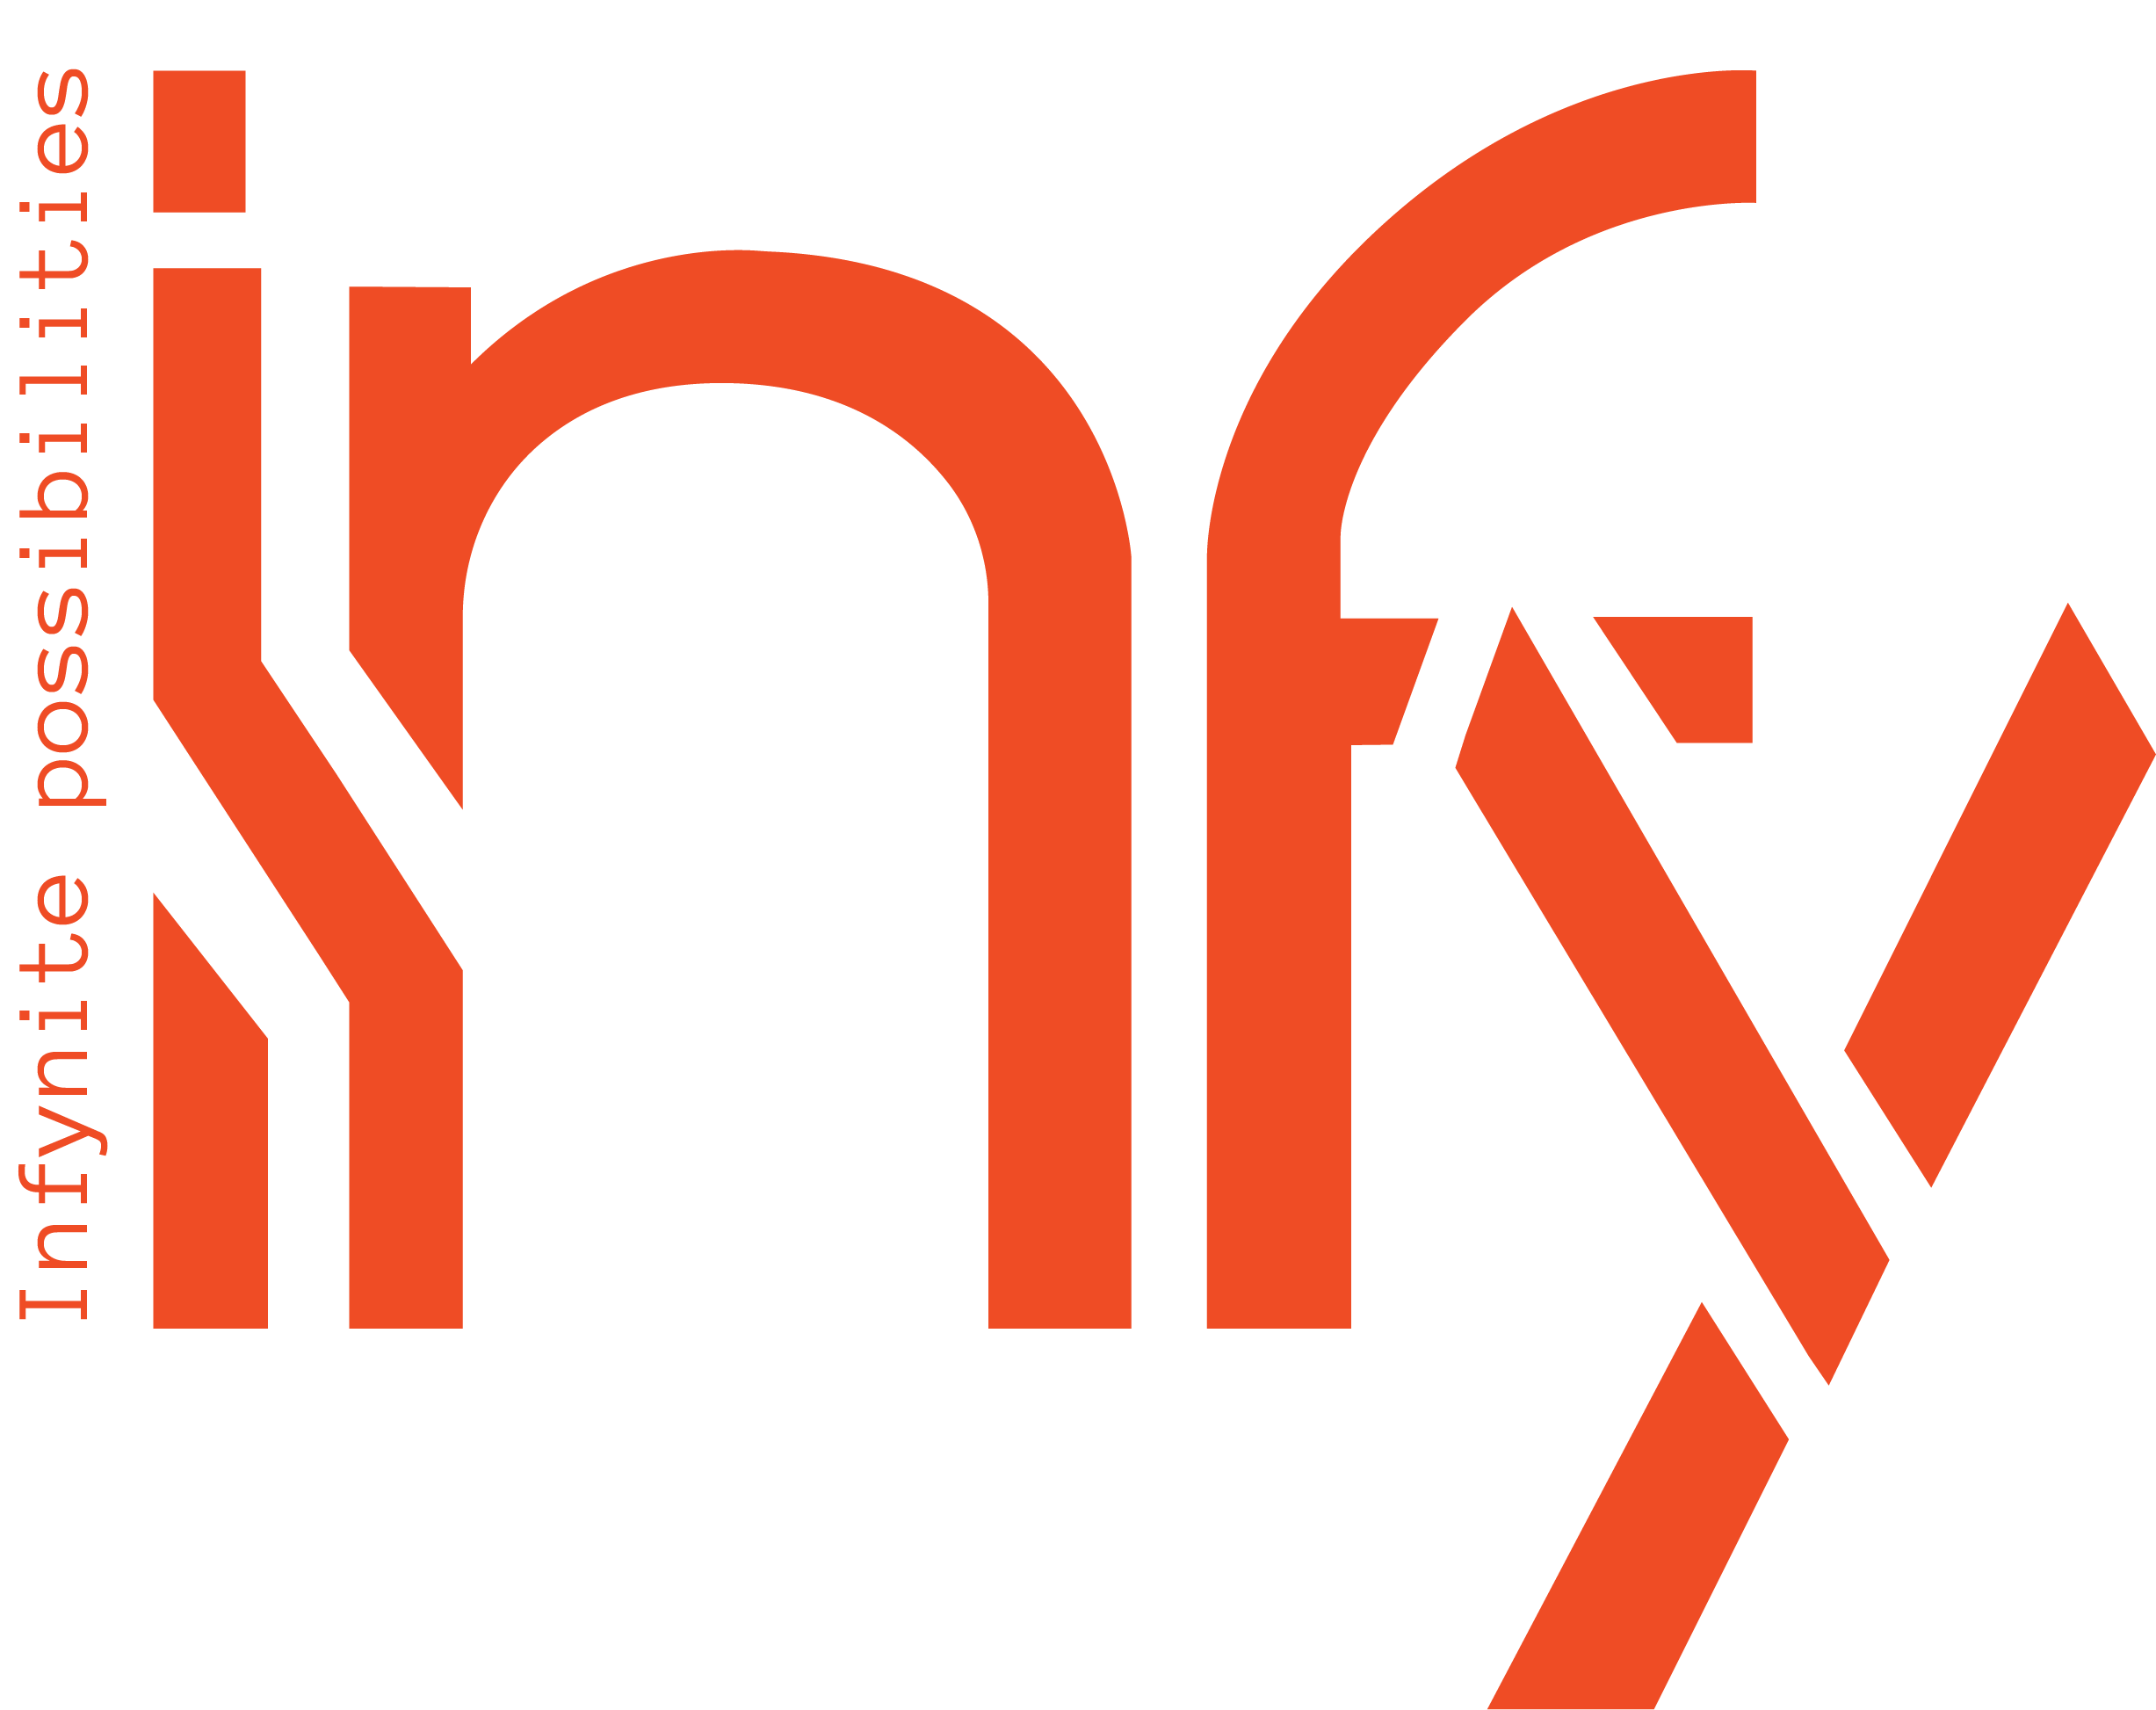 Orange InFY Logo with a tagline Infynite Possibilities